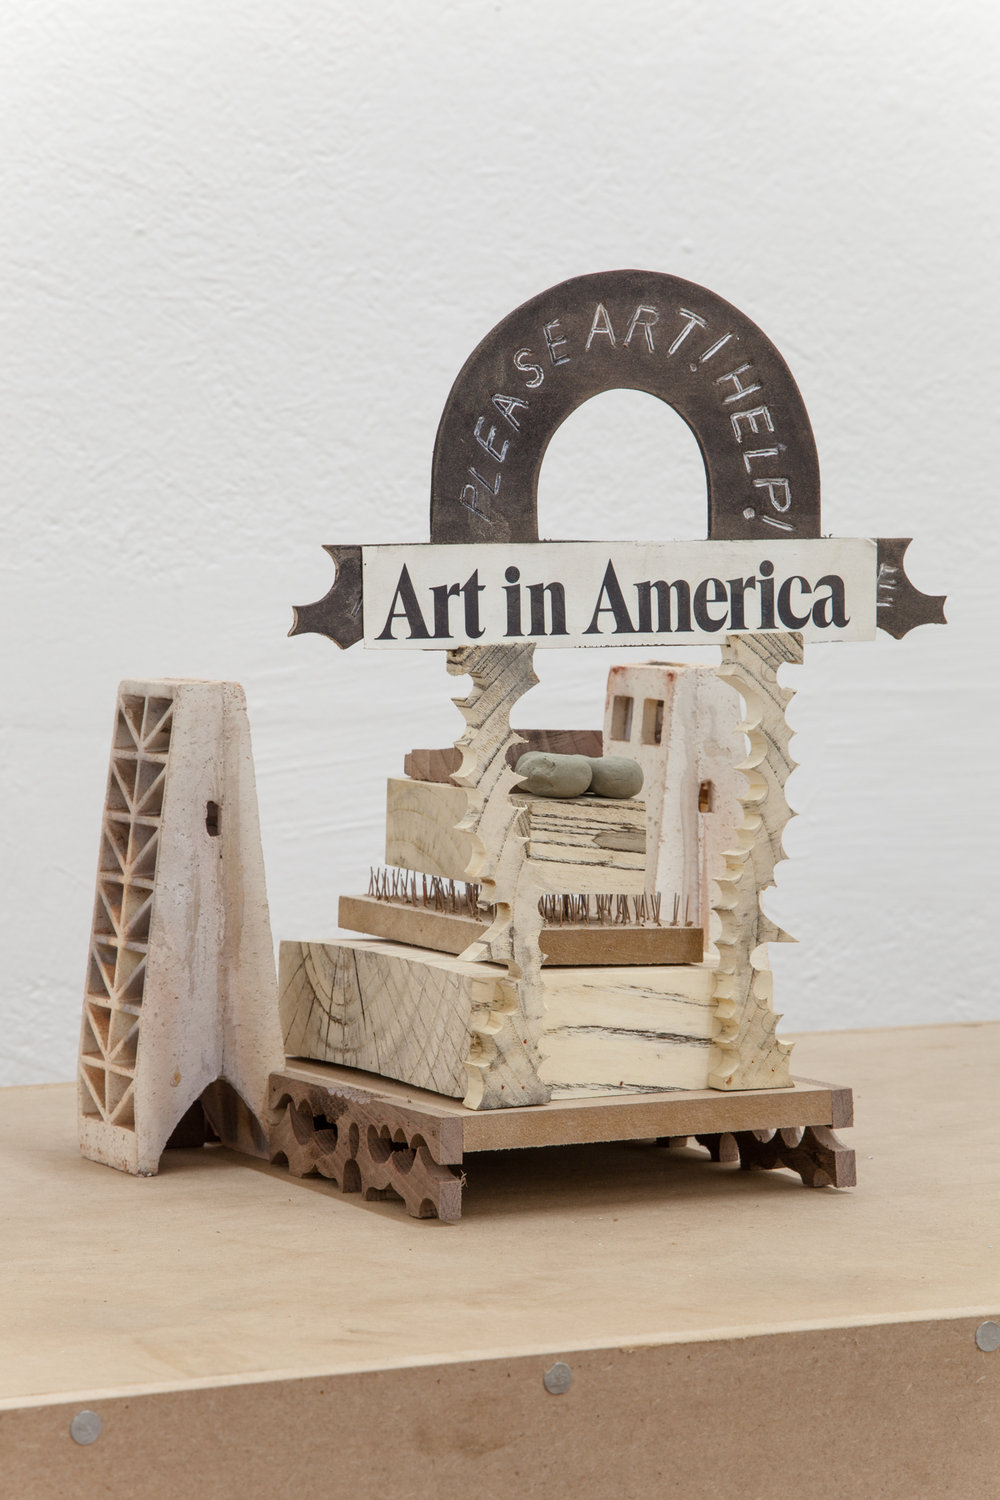 Harry Gould Harvey IV,  Please Art Help, Help Art Please! , 2018, Foraged Swamp Maple from Wilbur Woods, Foraged Walnut from Aquidneck Island, Depression Era Furnace Grates, Foraged Clay from Swans Island, Beheaded Art in America Magazine, MDF, and Micro Pins, 11 x 11 x 14 inches